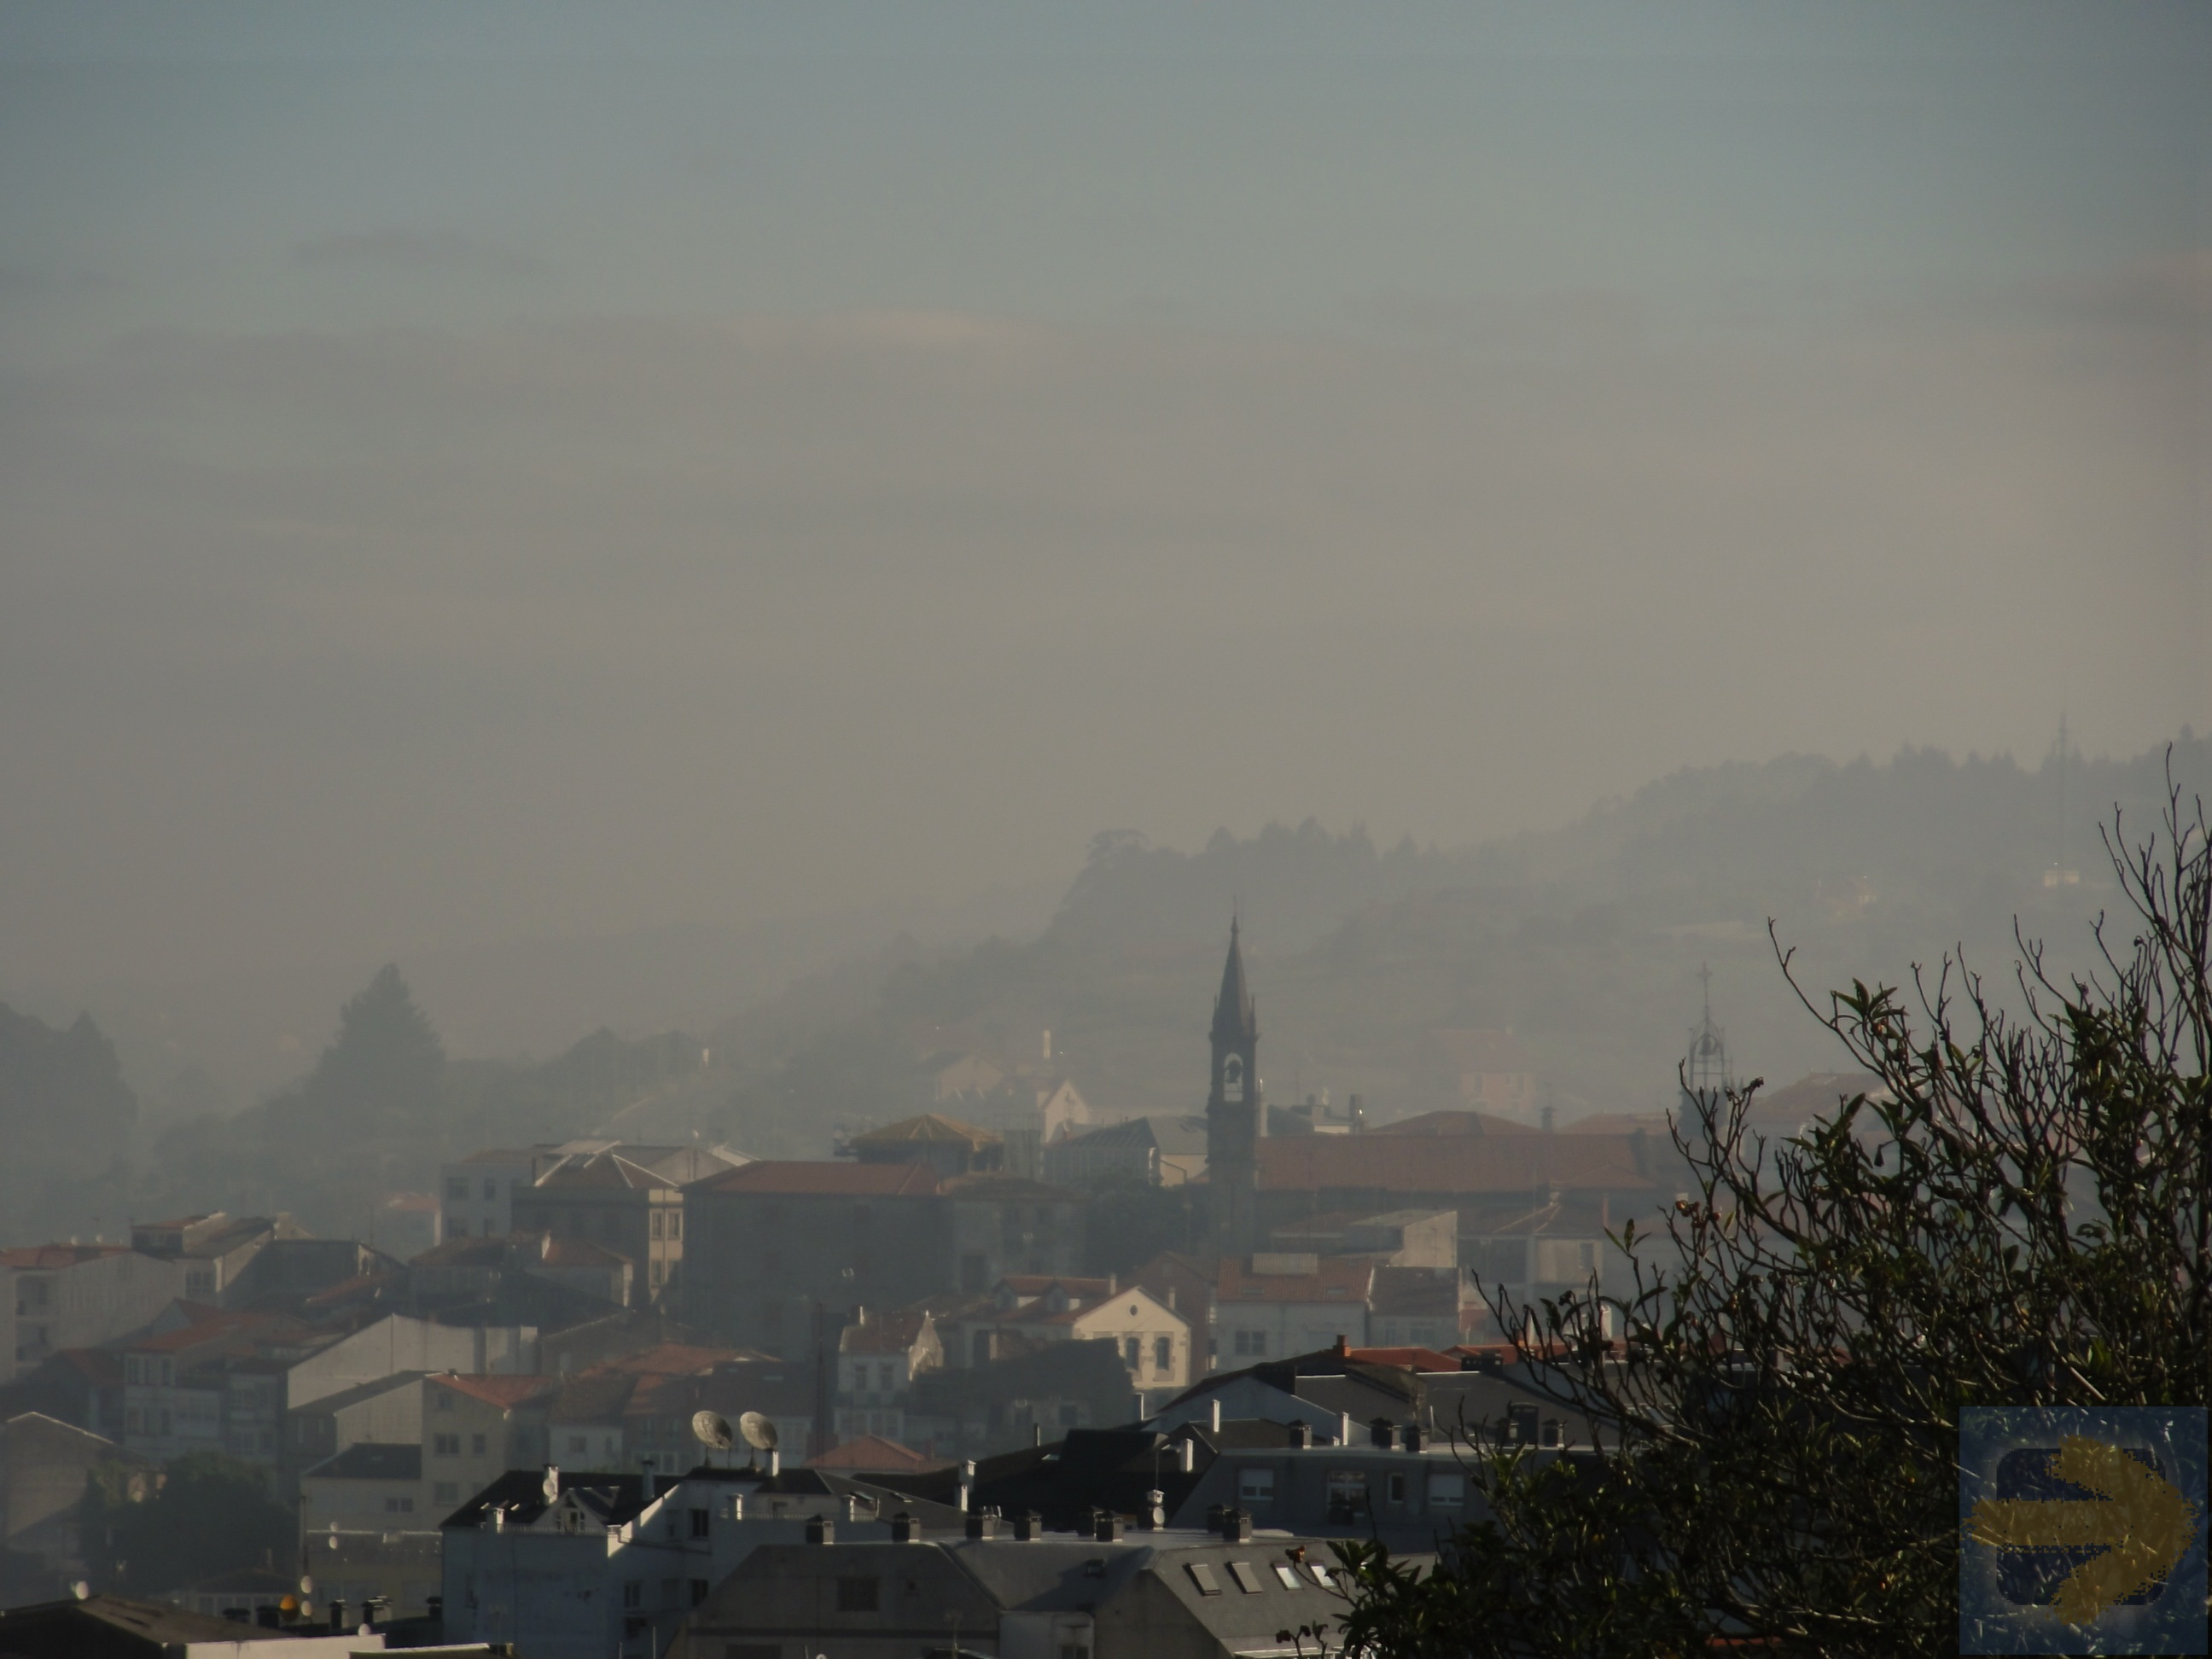 Early morning leaving Betanzos